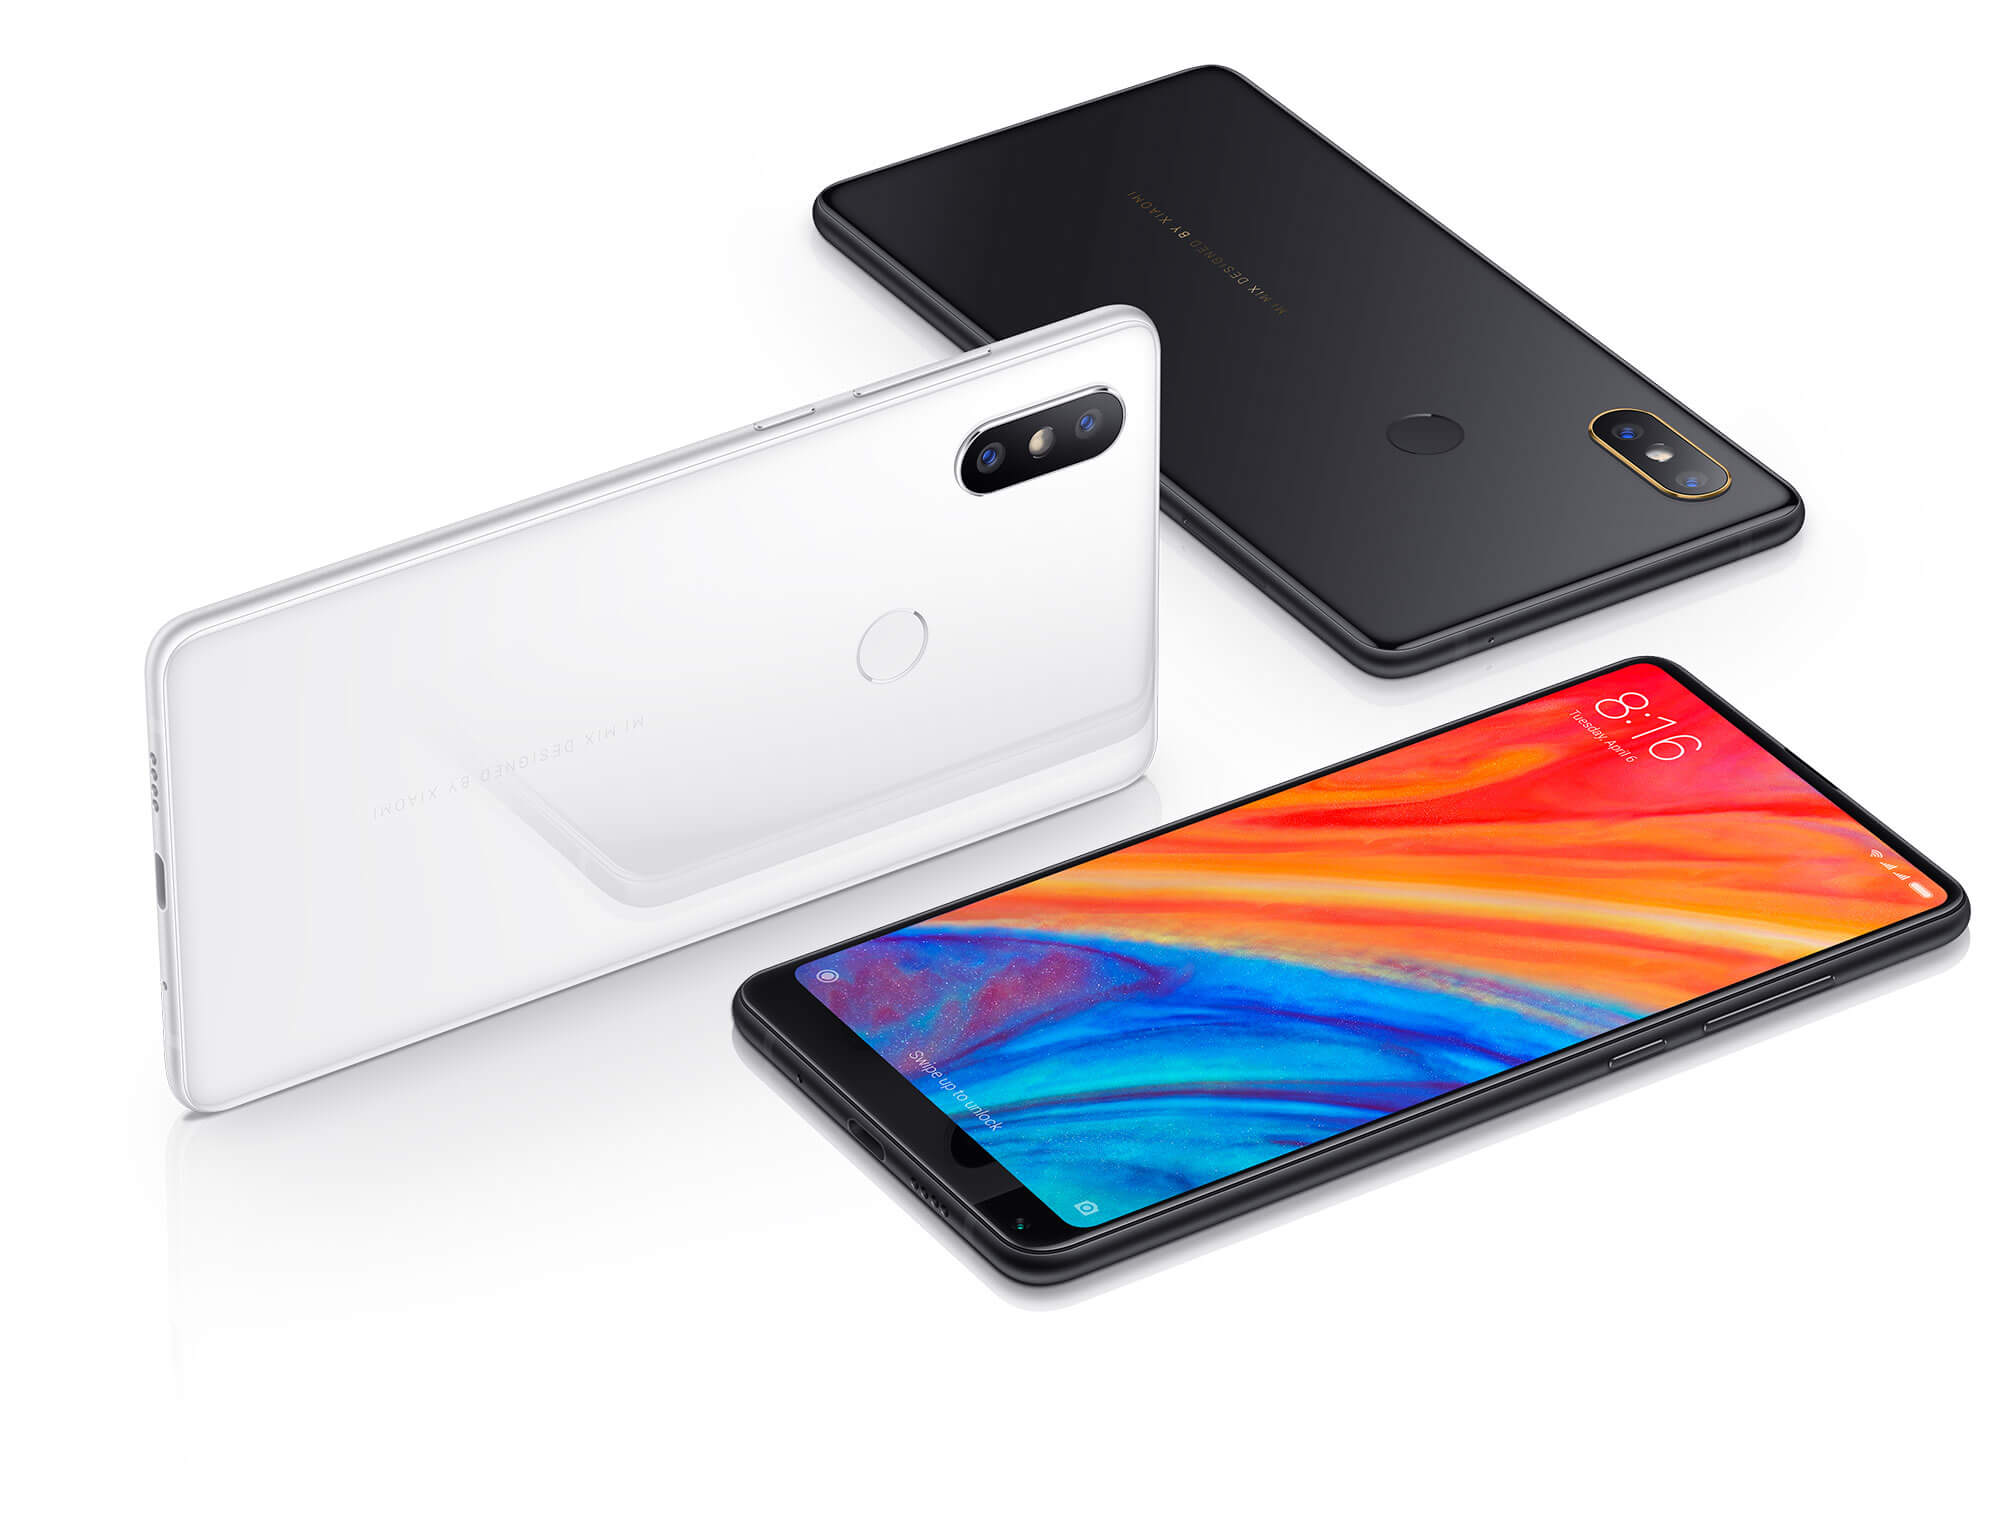 Mi Mix 2s By Starck (Xiaomi)